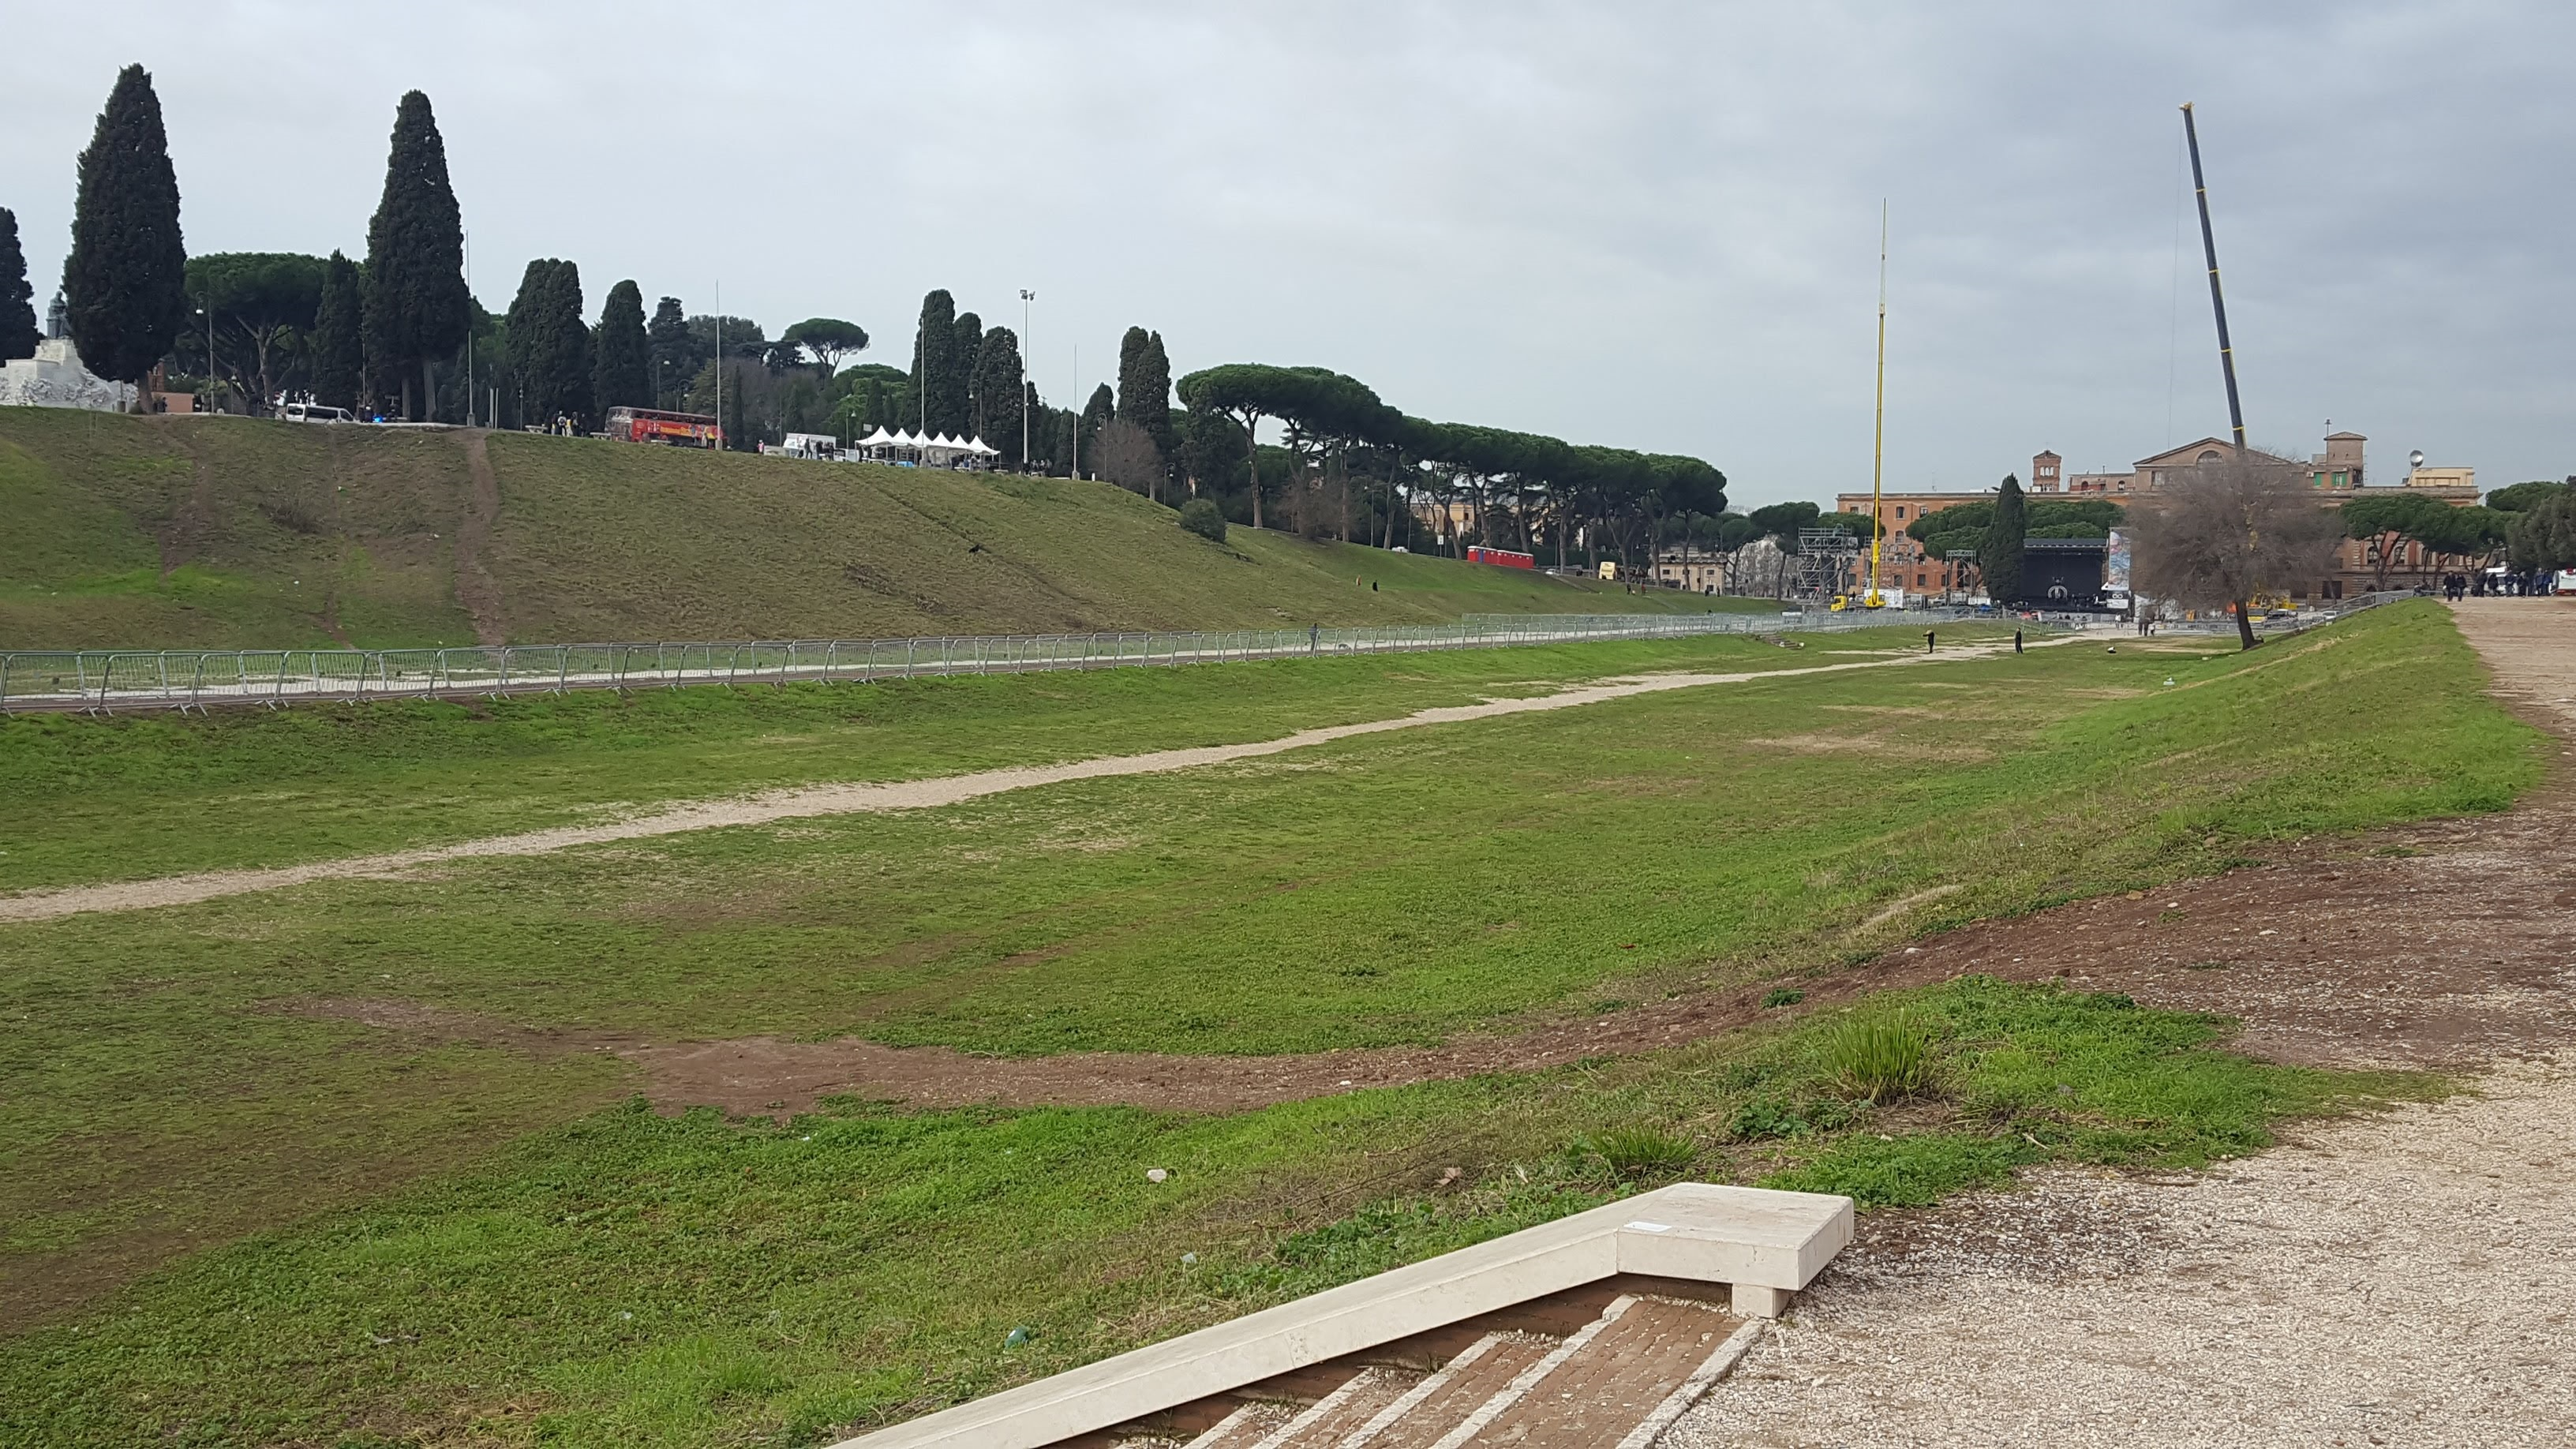 Circus Maximus Photo by Alia Shuck